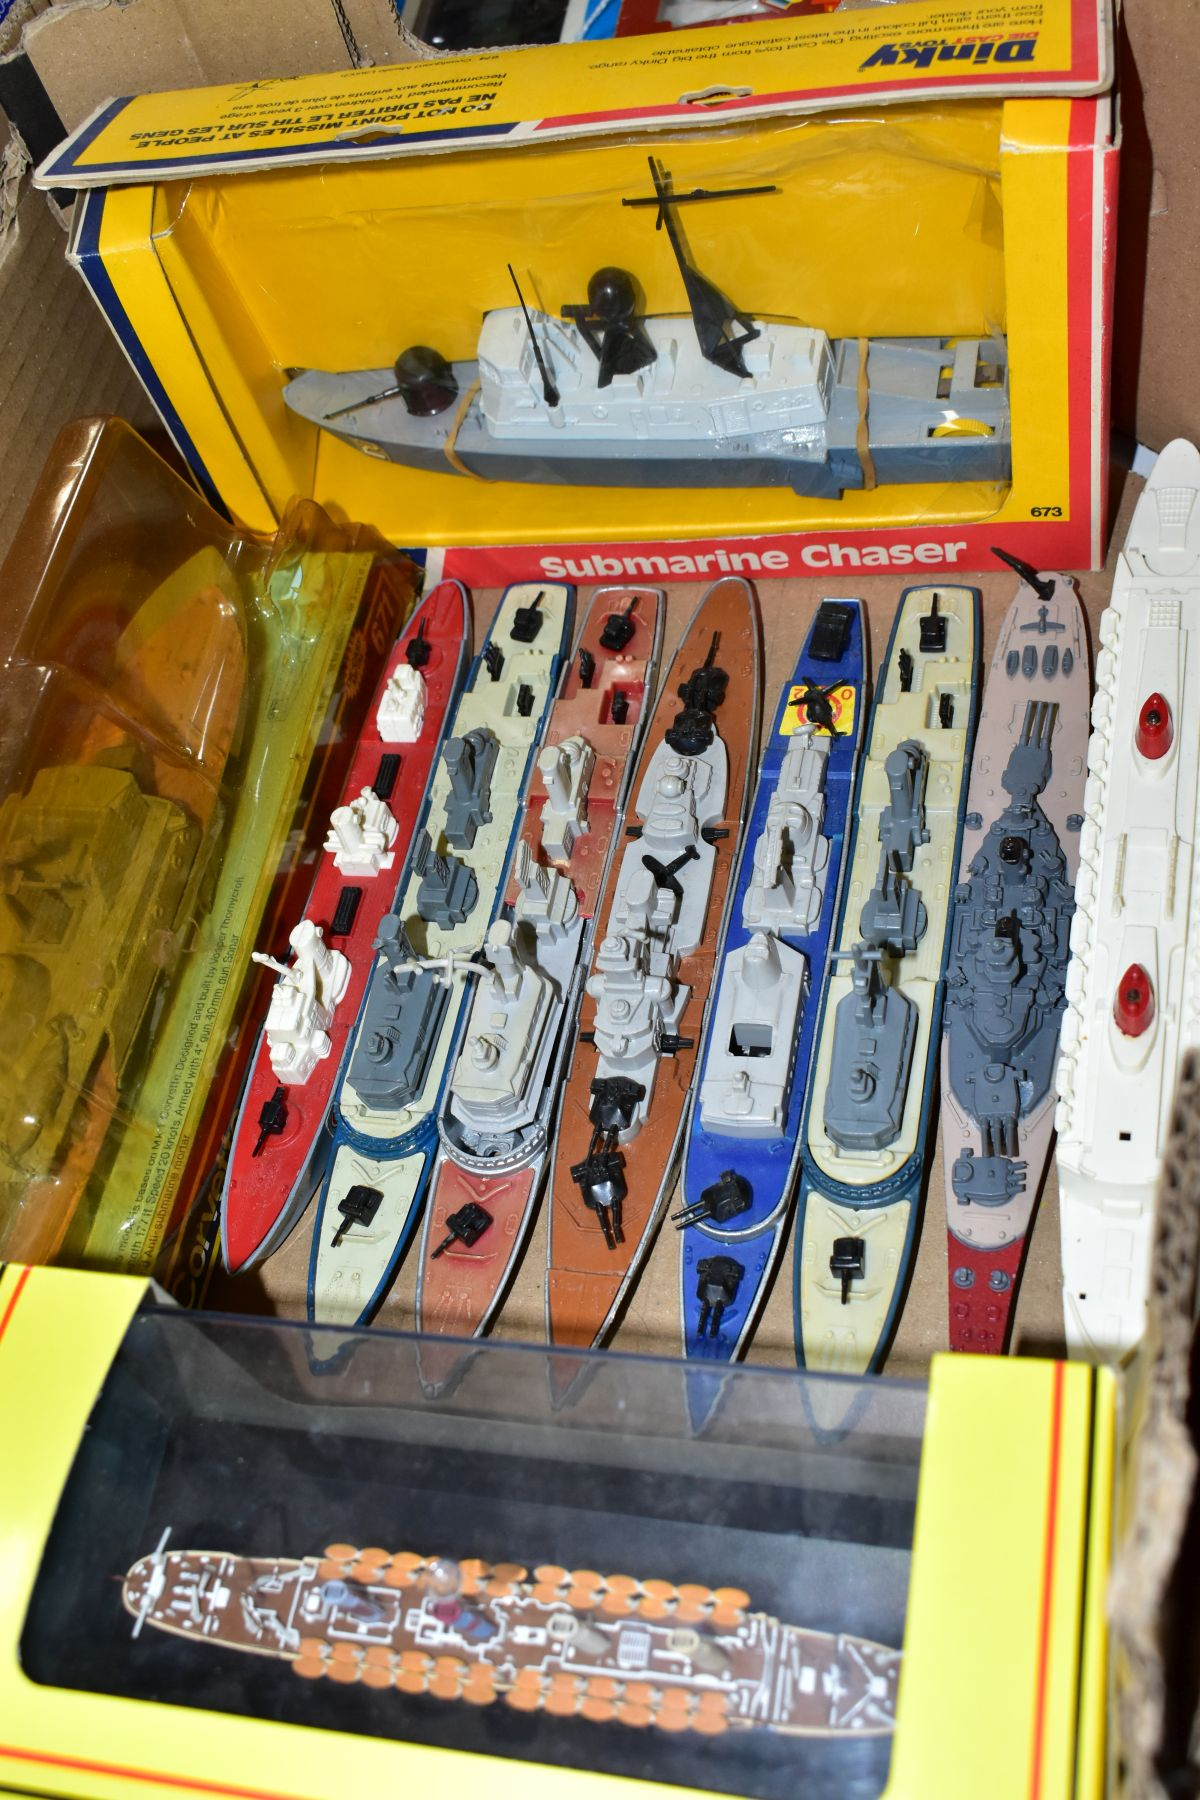 A COLLECTION OF BOXED AND UNBOXED SHIP MODELS, to include Dinky Toys Submarine Chaser, No.673, - Image 2 of 6